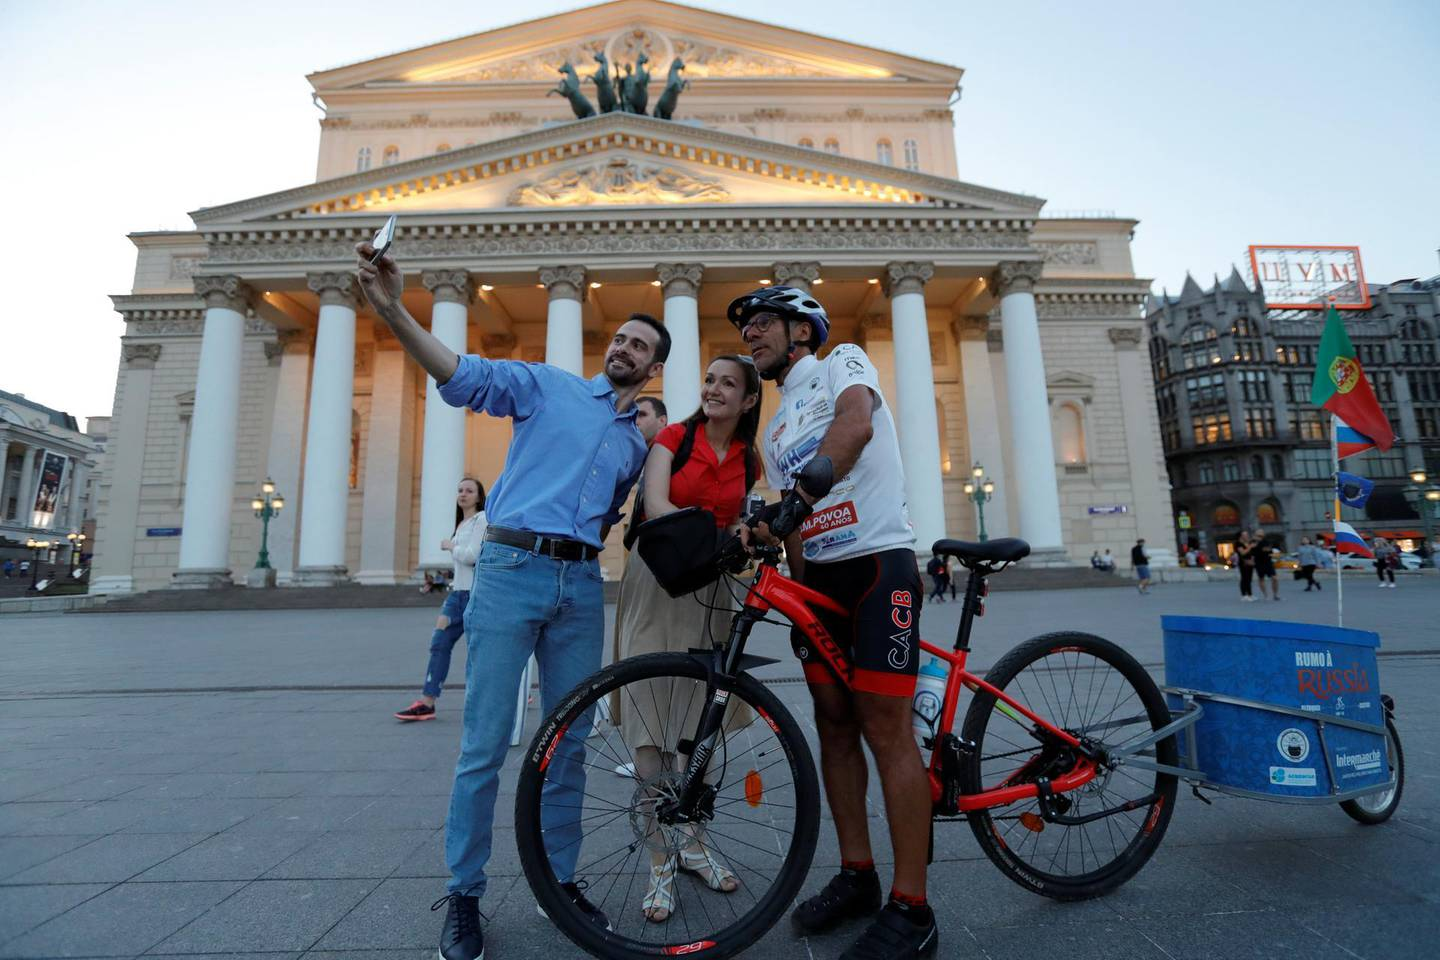 Portuguese cyclist Helder Batista, who arrived in Russia's capital to attend the 2018 FIFA World Cup, poses for a selfie with pedestrians in front of the Bolshoi Theatre in central Moscow, Russia June 18, 2018. REUTERS/Tatyana Makeyeva